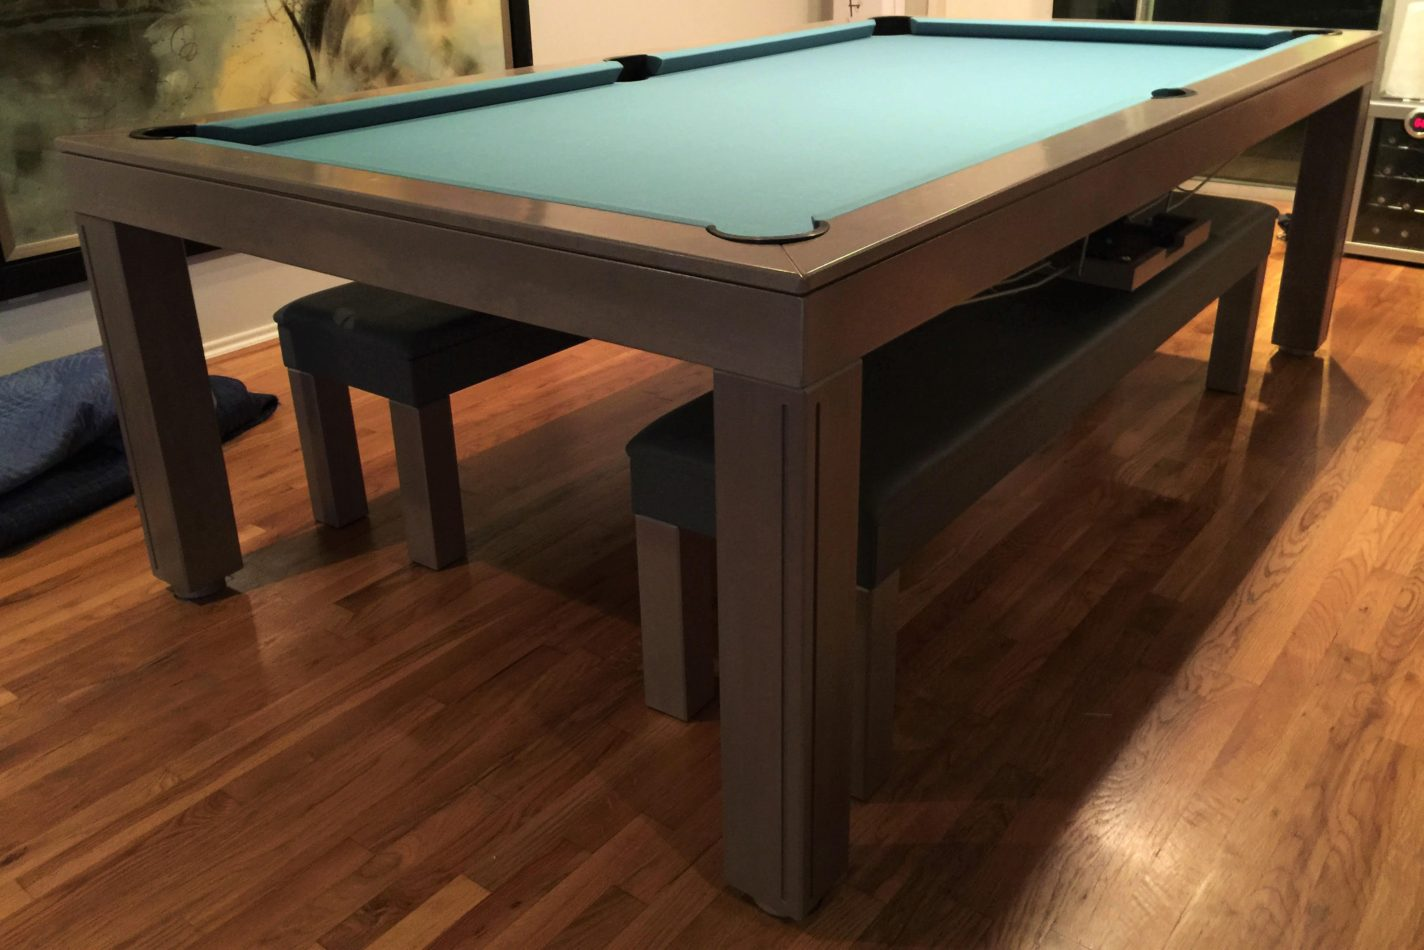 Vision Convertible Pool Table, Arizona